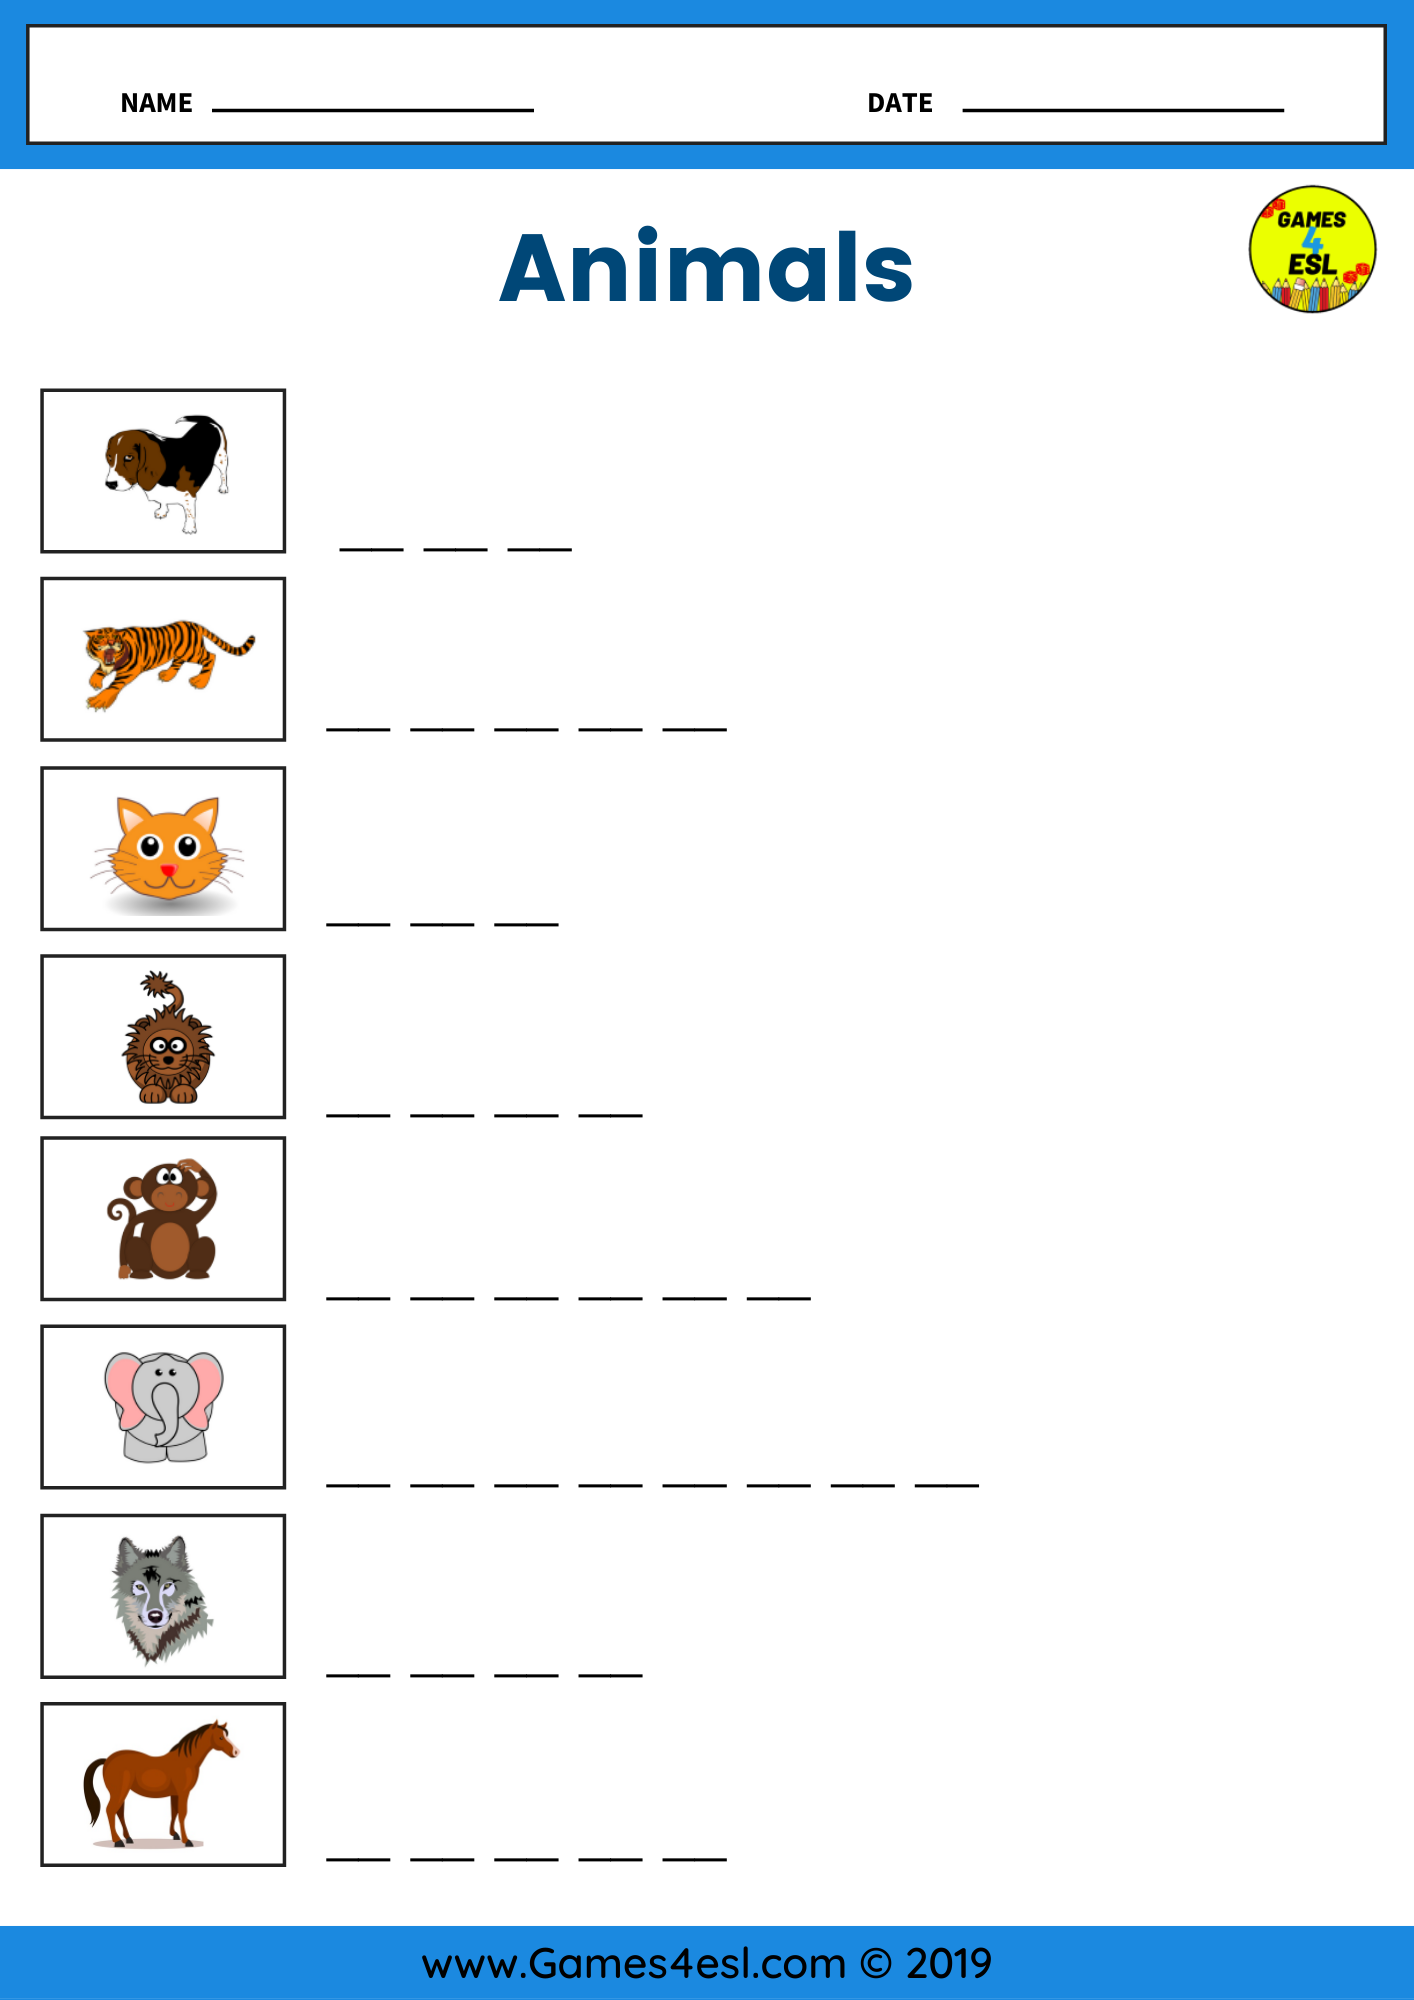 An Animals Vocabulary Worksheet To Practice Writing And